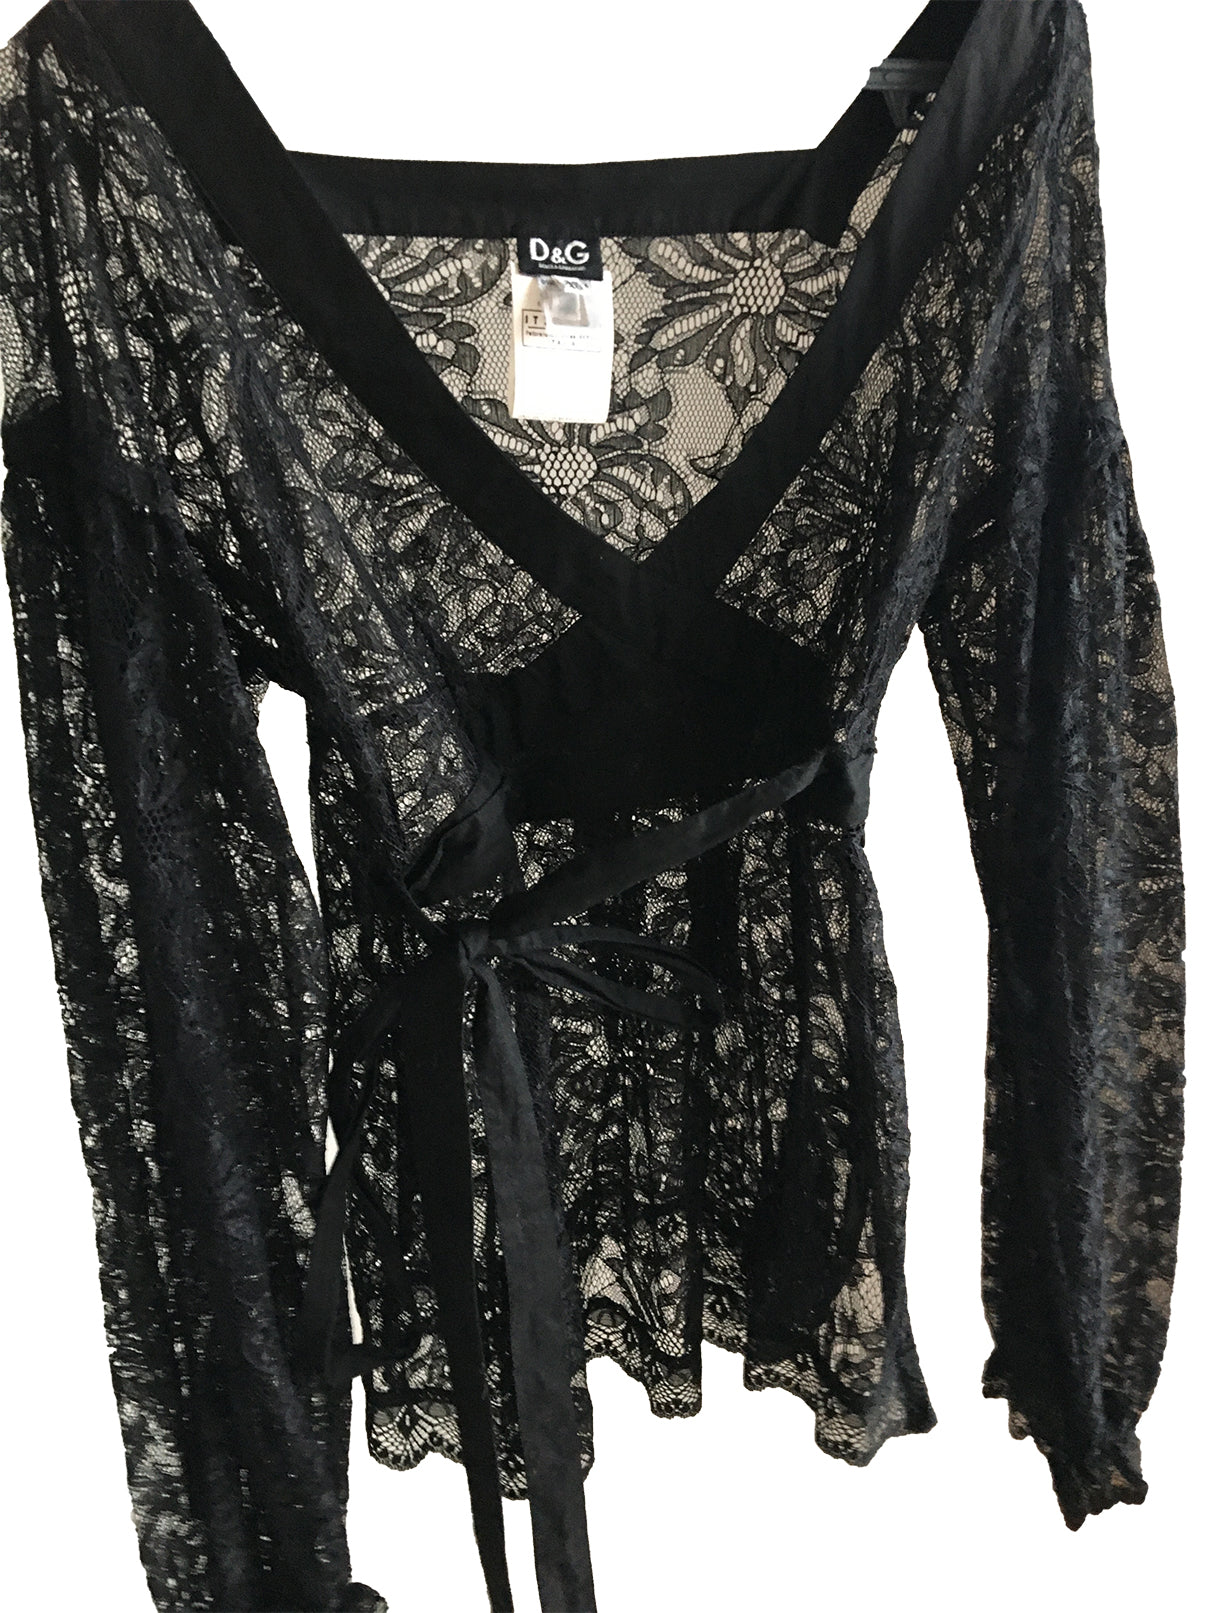 Dolce & Gabbana Black Lace Blouse with Belt and Flared Sleeve with Elastic Cuff  Size 36 (EU) 40 (IT)